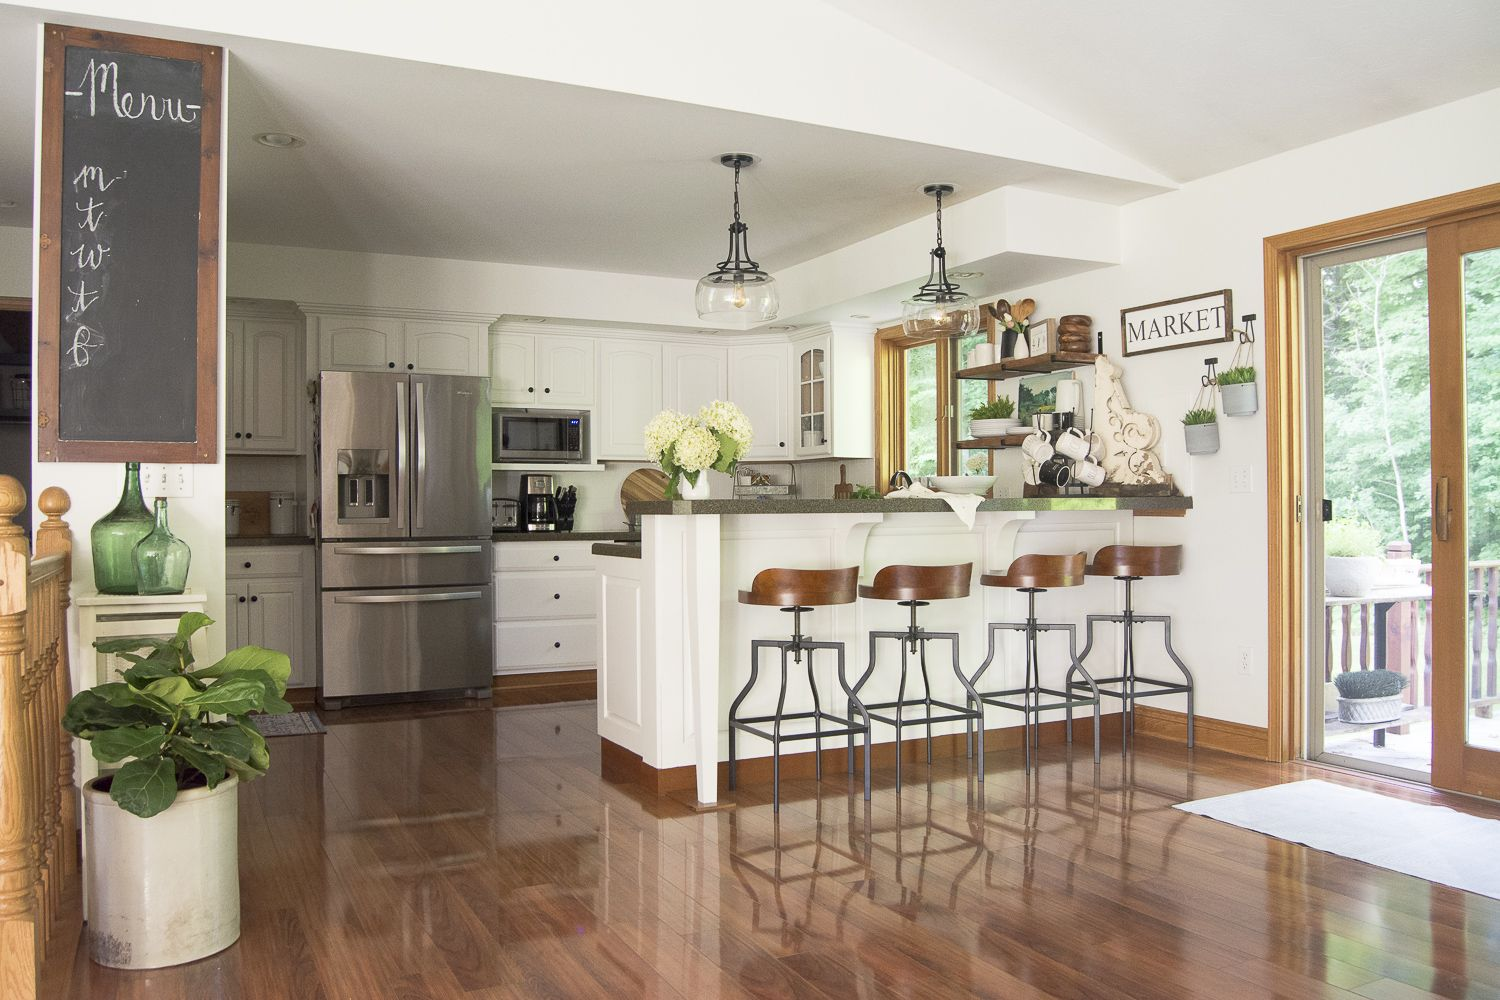 5 gorgeous kitchen renovations that cost less than 5 000 with images budget kitchen remodel on kitchen remodel under 5000 id=38106